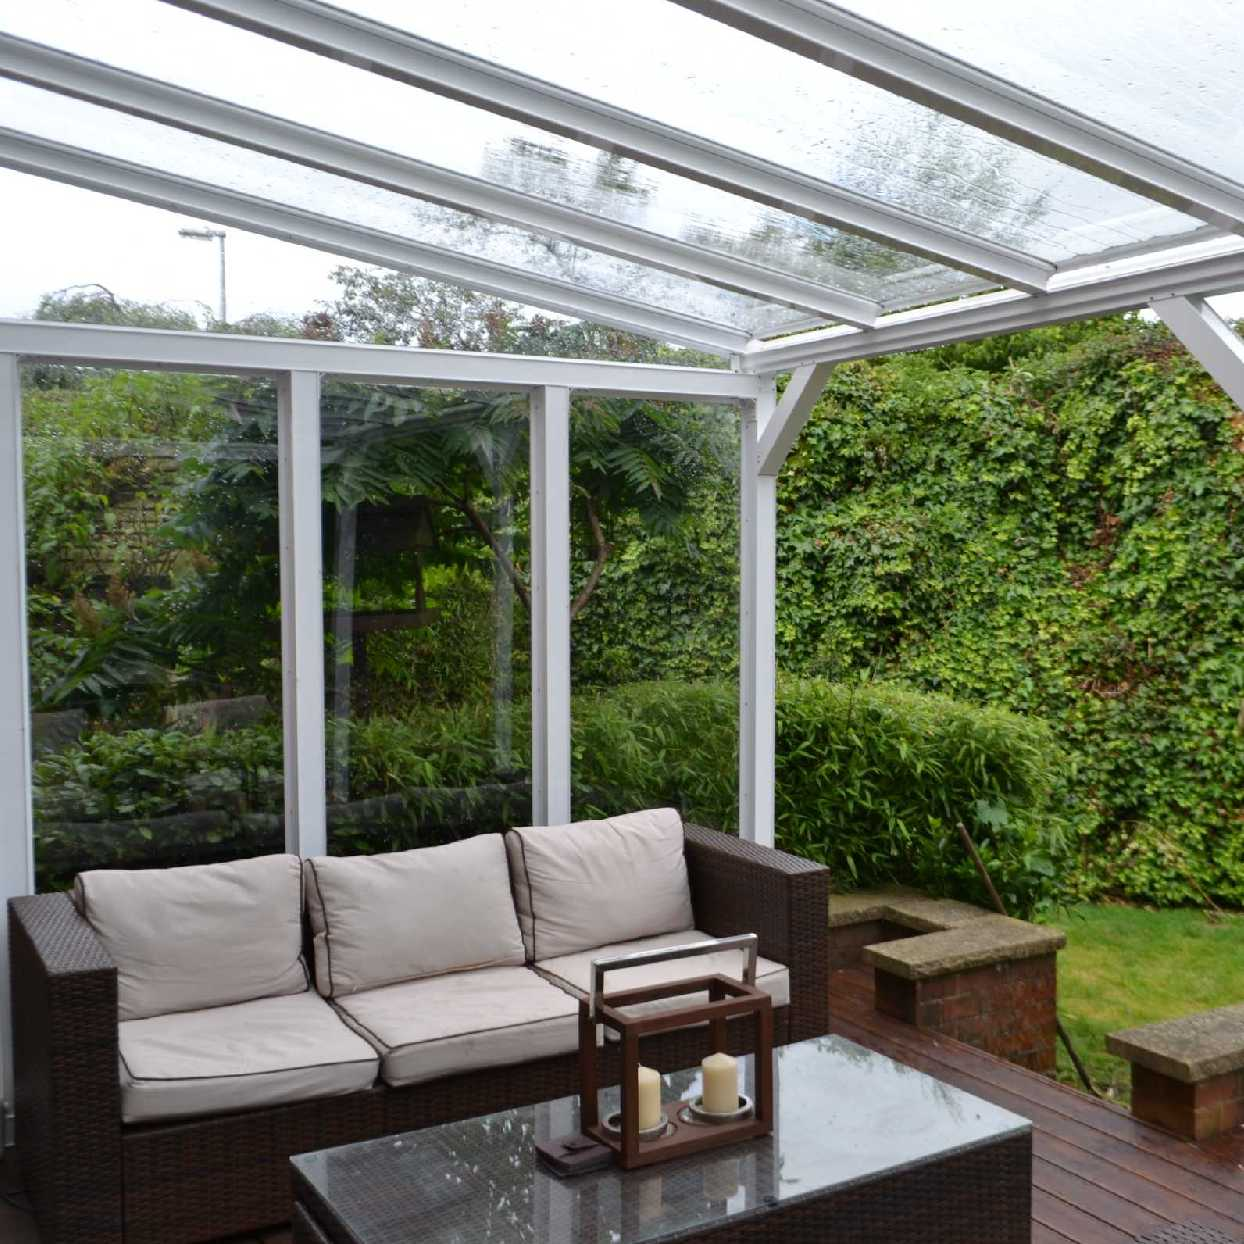 Great selection of Omega Smart White Lean-To Canopy with 16mm Polycarbonate Glazing - 6.3m (W) x 1.5m (P), (4) Supporting Posts